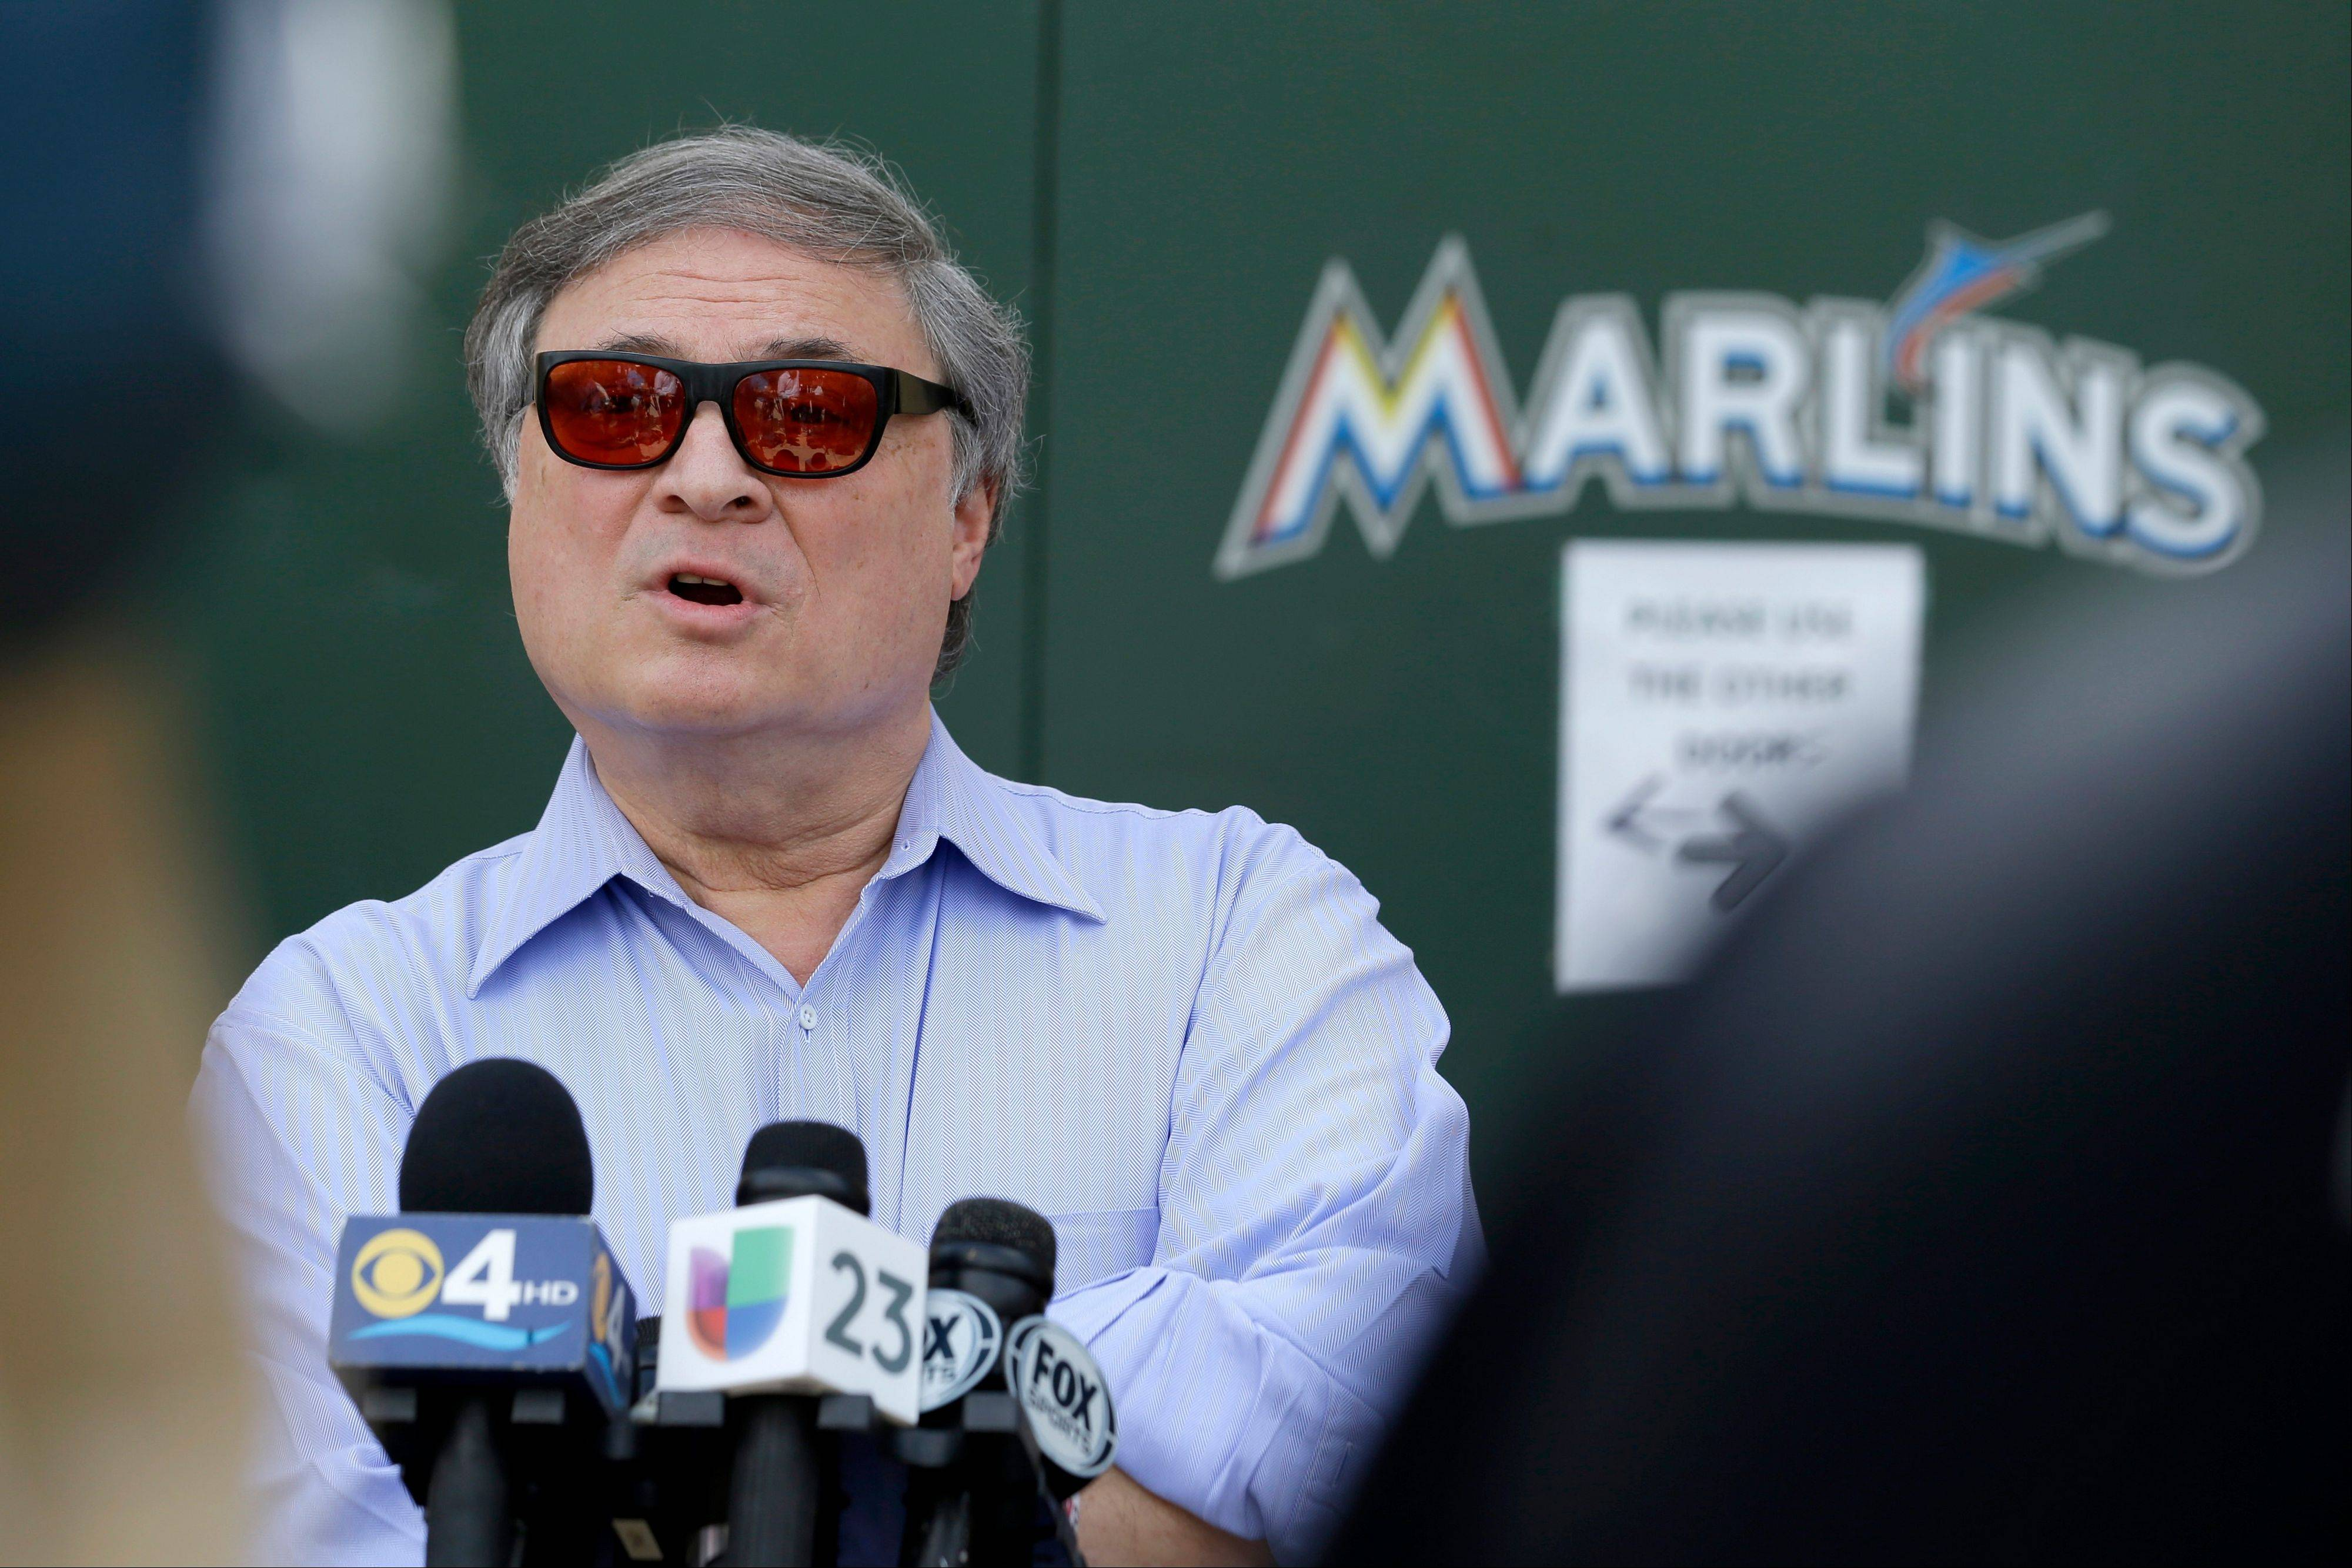 Miami Marlins owner Jeffrey Loria cut short a news conference outside of the team�s spring training facility after he was peppered with questions about his reduced payroll and breakup of last year�s team.